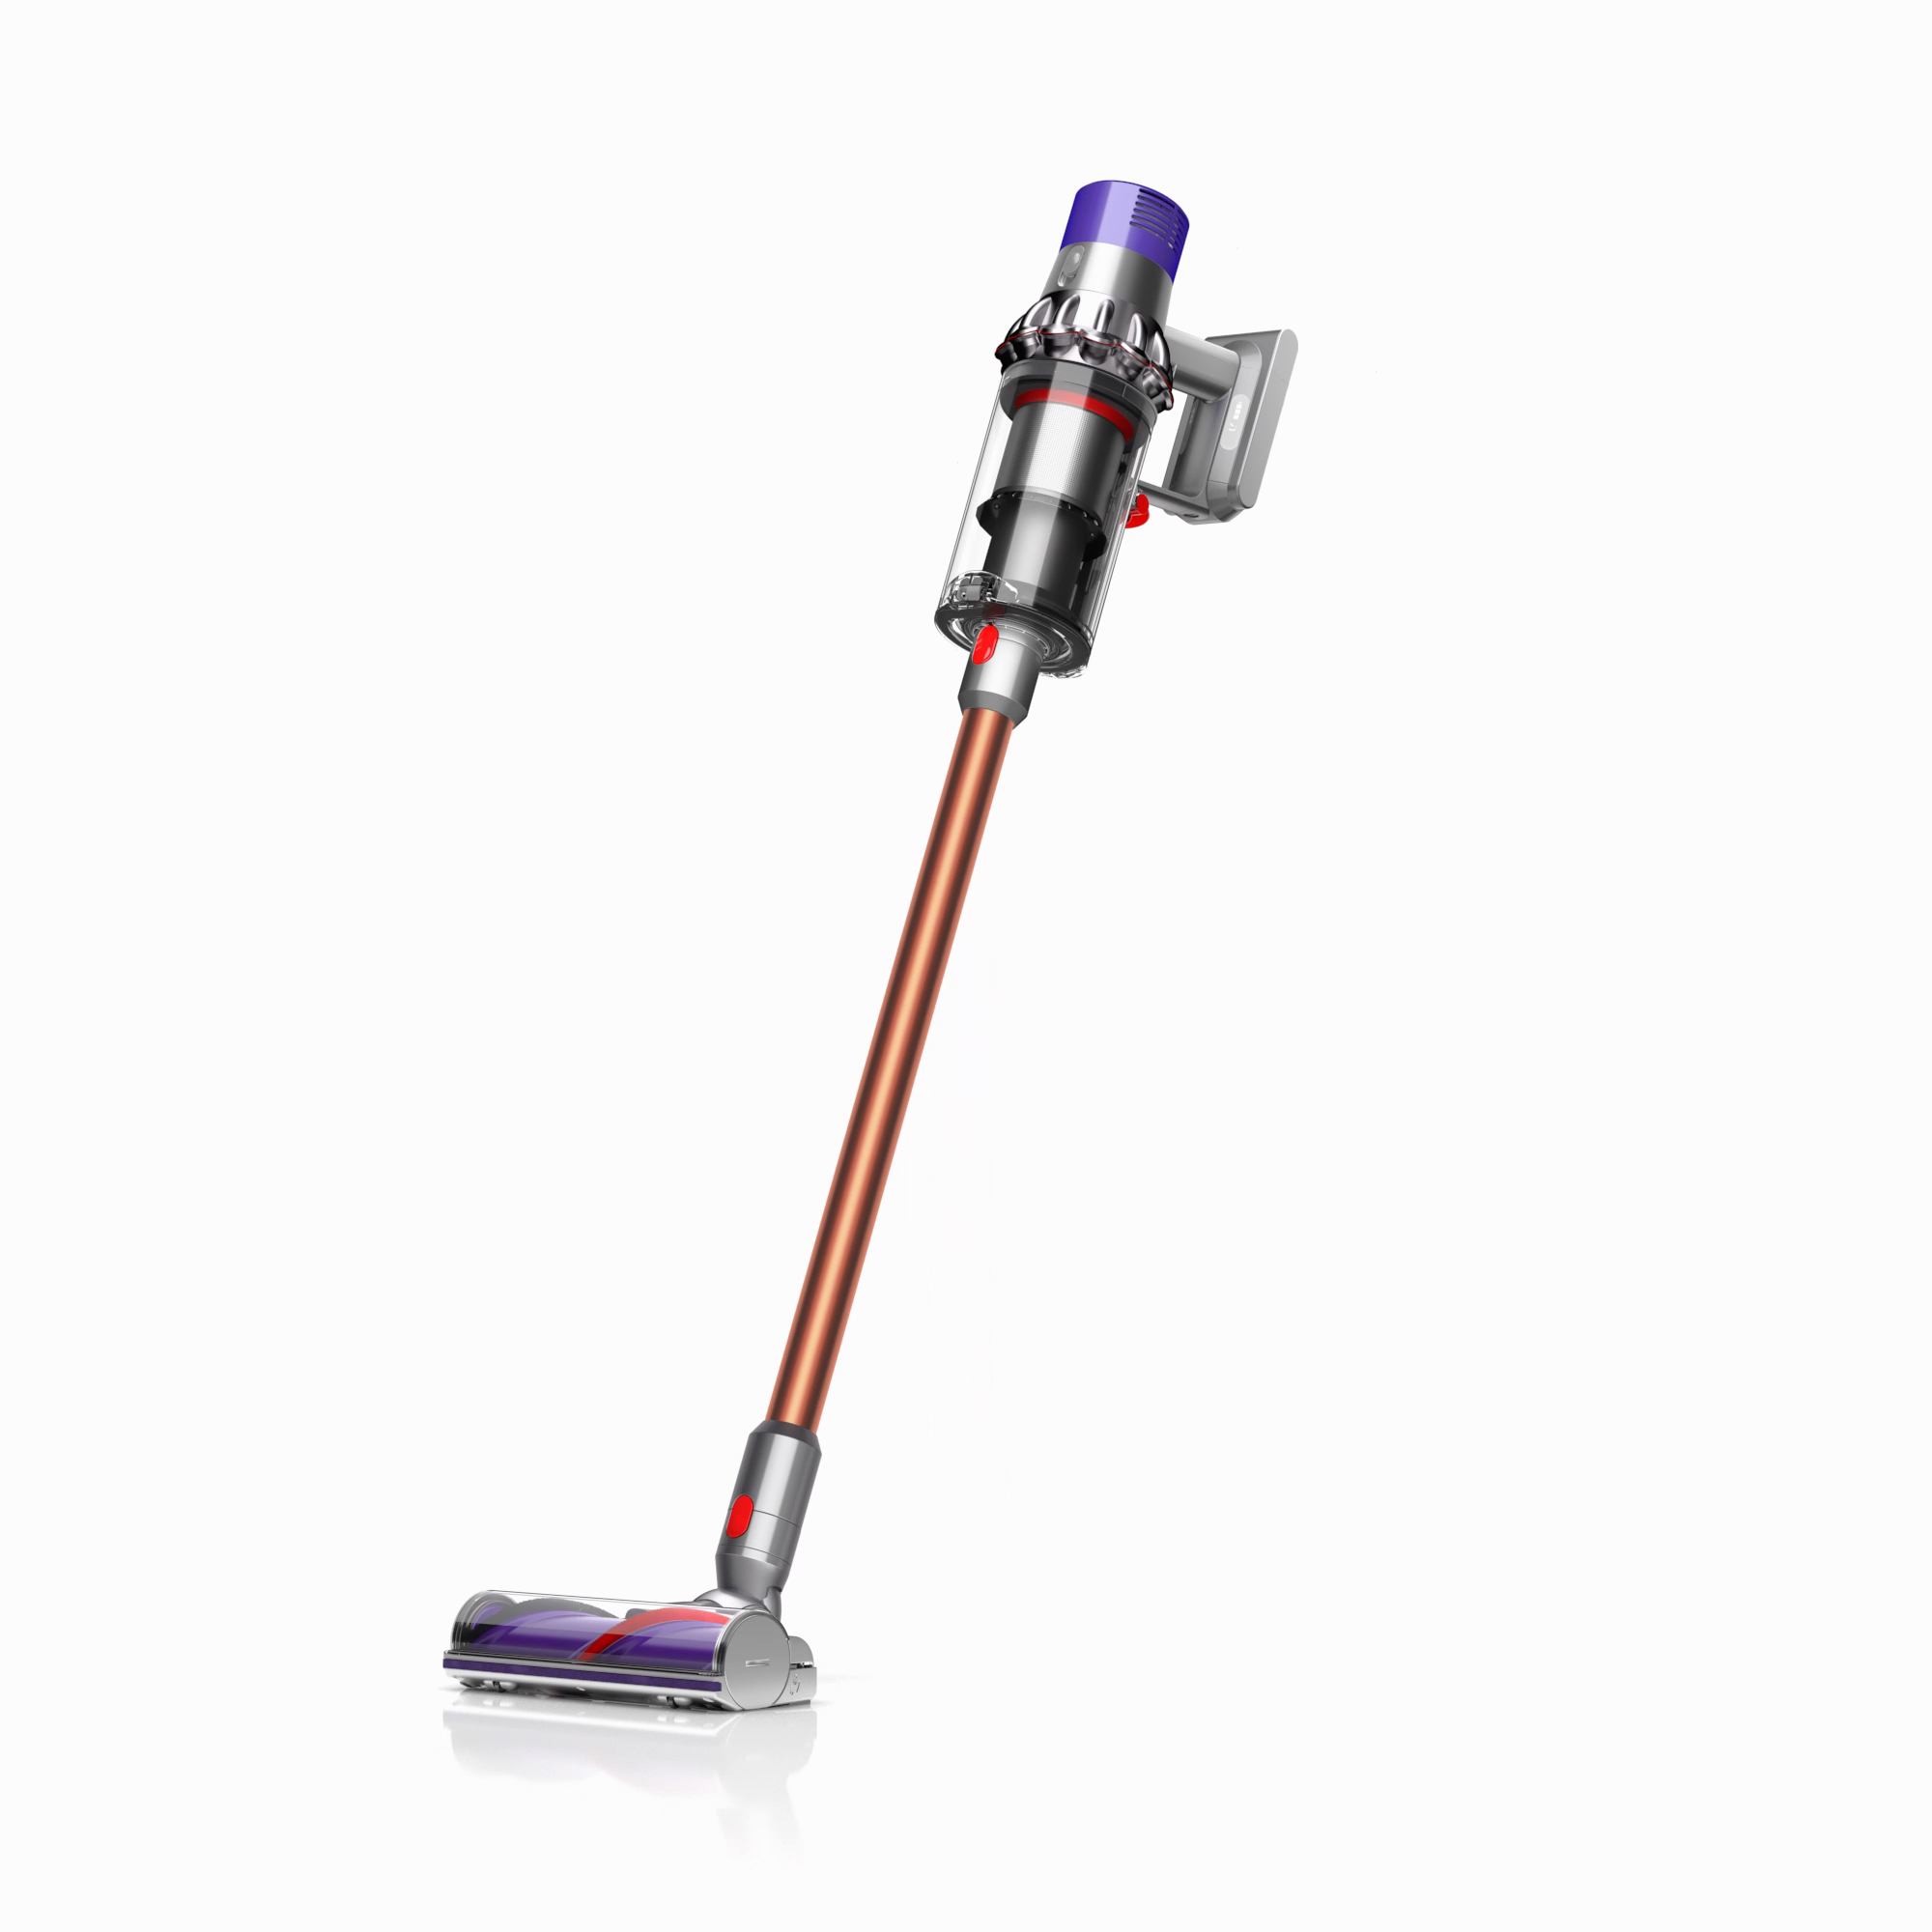 Wonderbaar Dyson Cyclone V10™ Absolute draadloze stofzuiger. | Wish list in VD-15